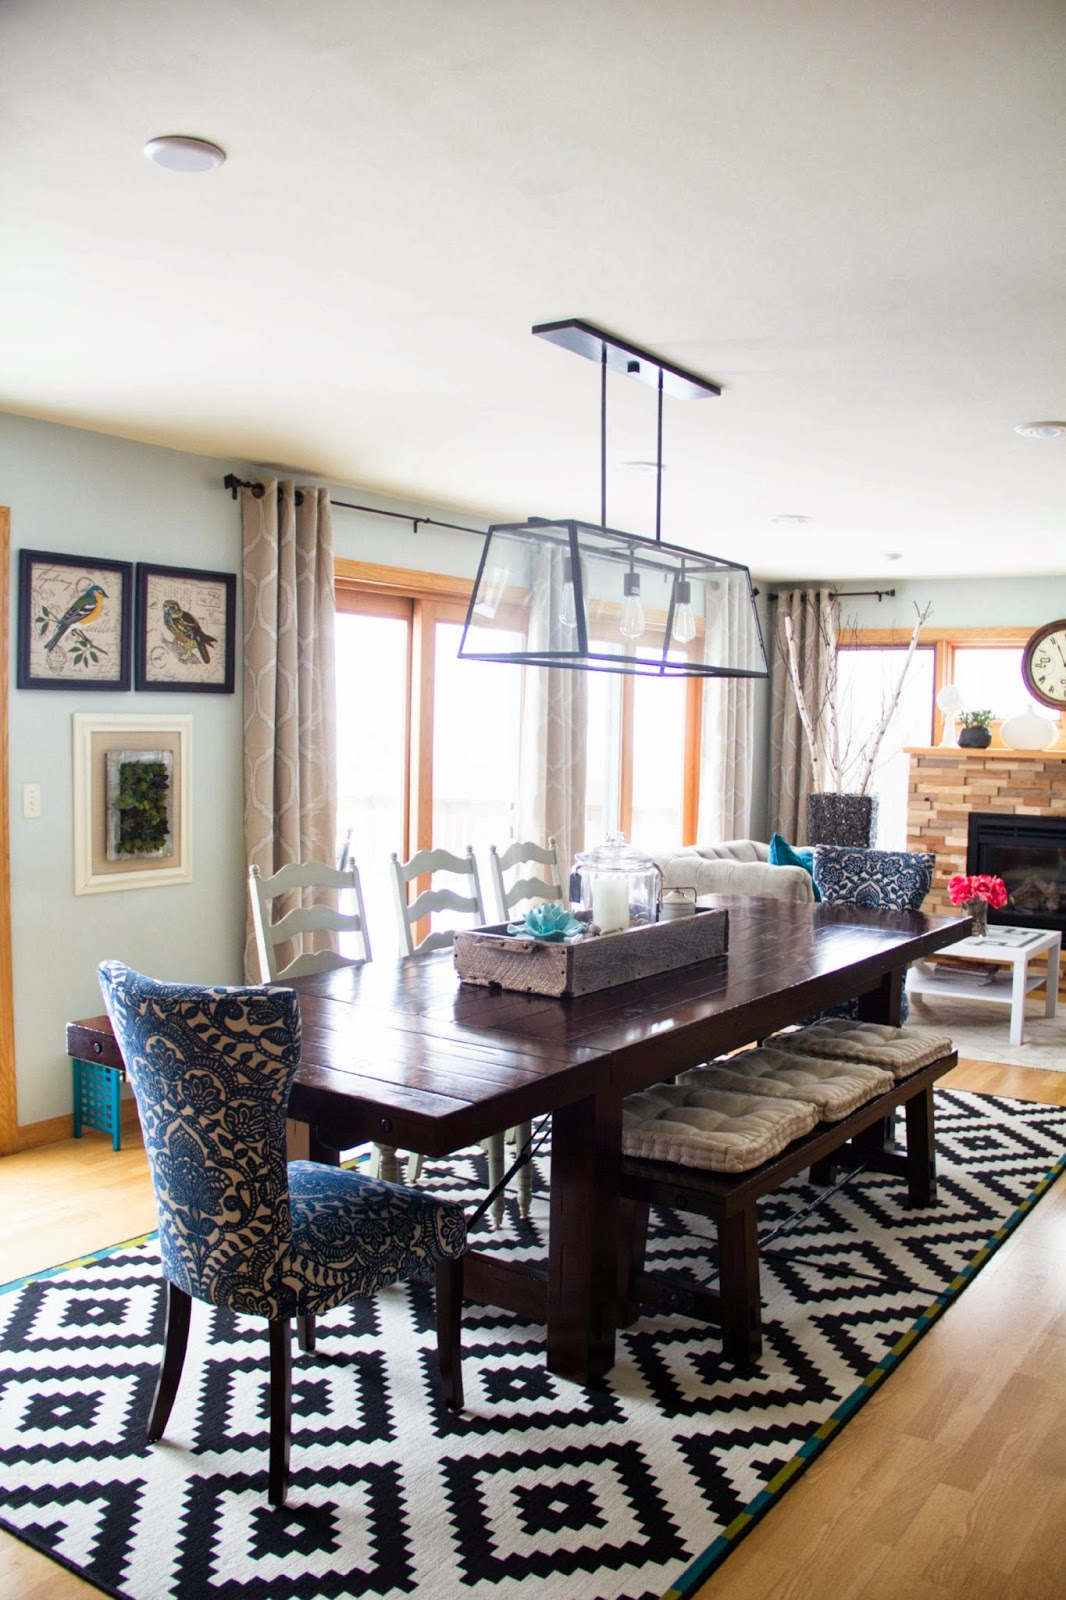 Awesome Living Spaces Dining Room Frieze - Living Room Design Ideas ...